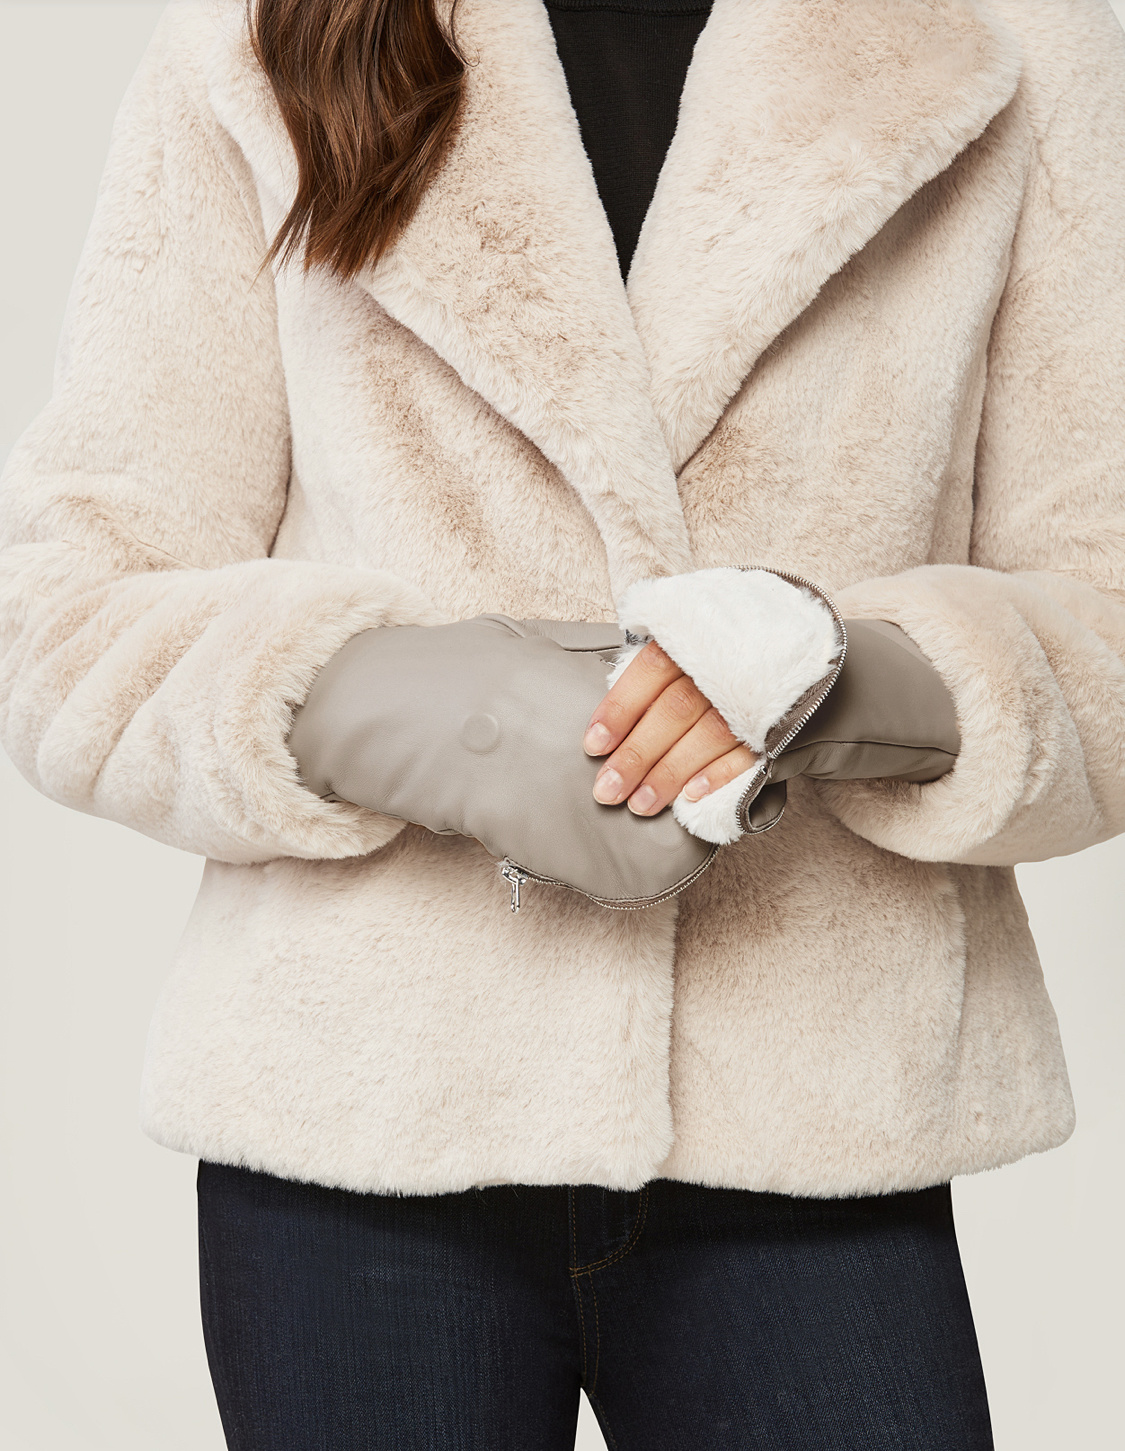 Soia & Kyo Betrice Leather Mitts - Fawn